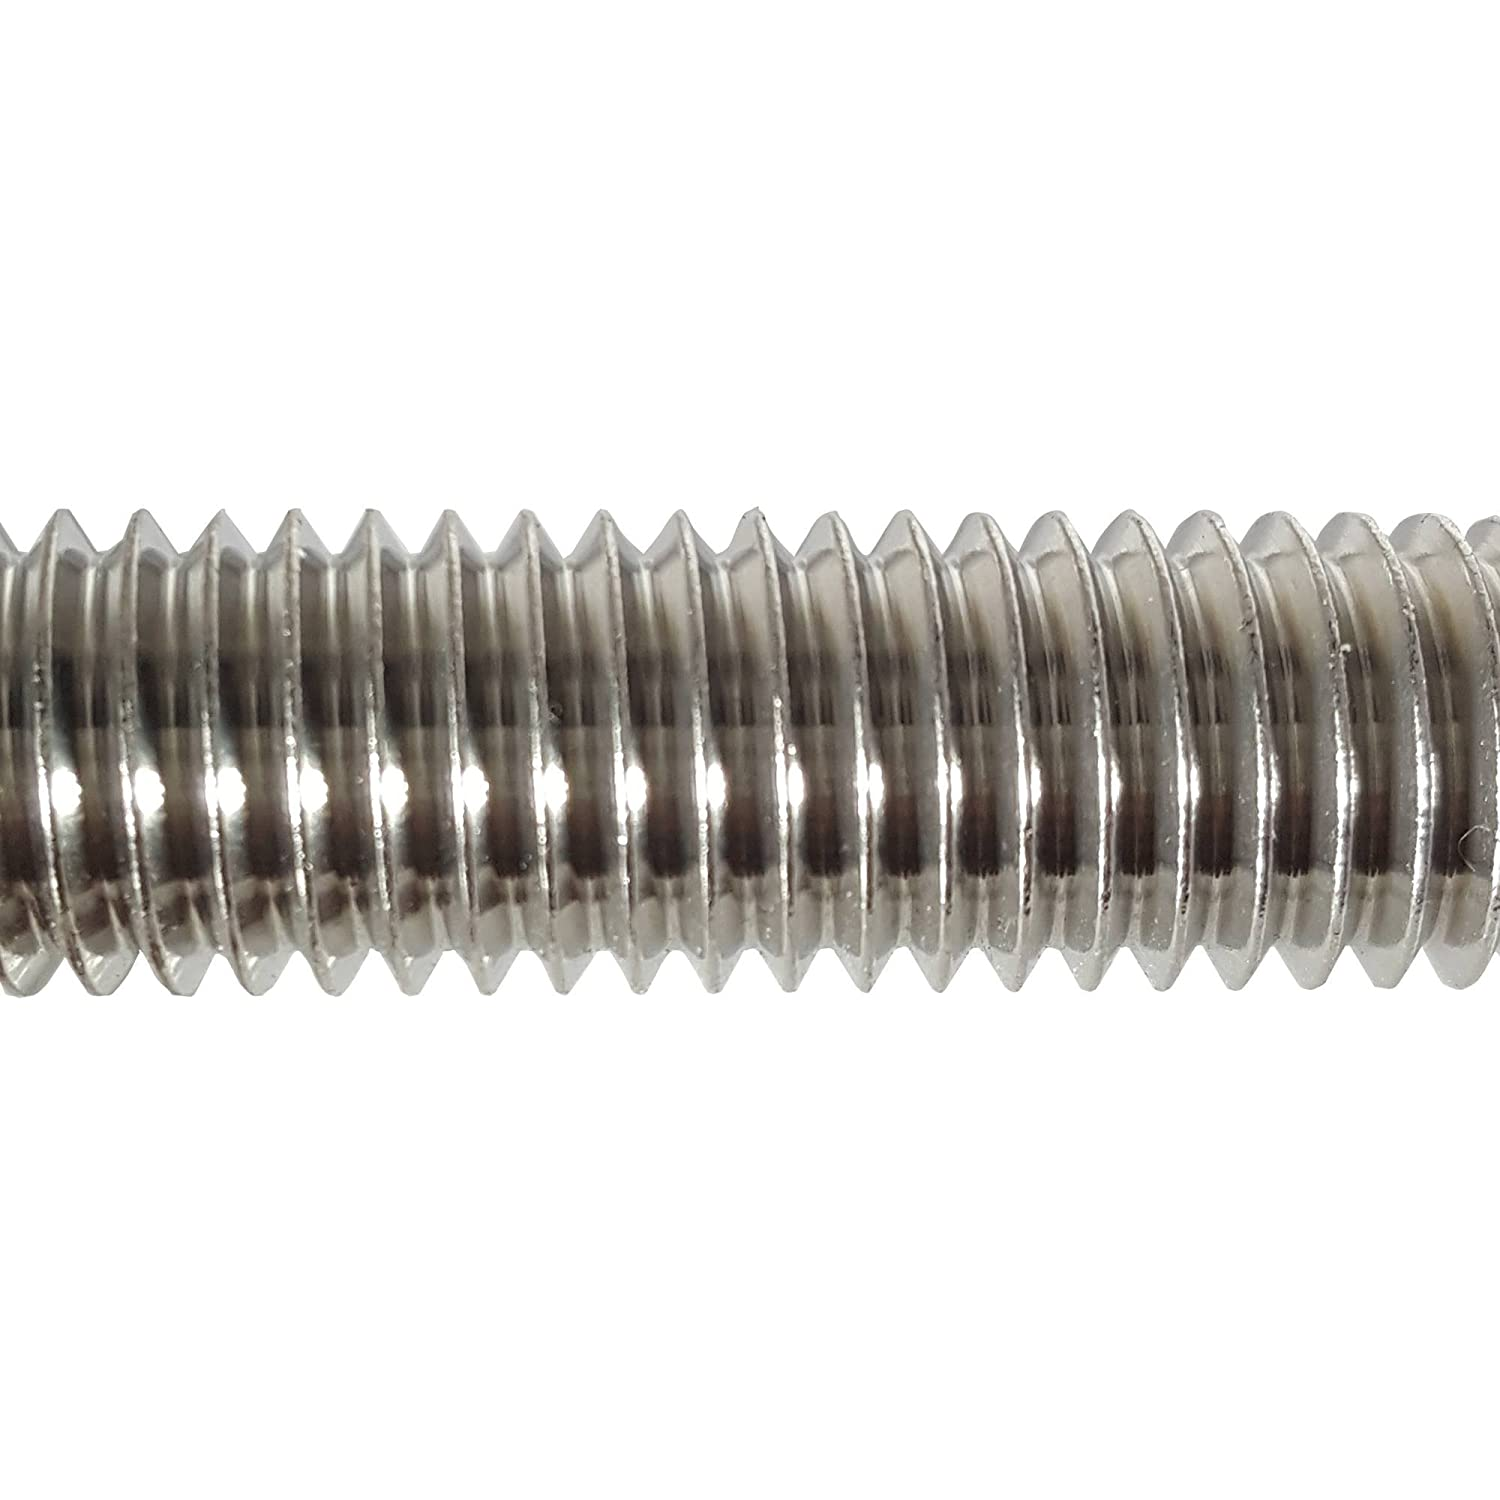 Full Thread Allen Socket Drive Quantity 10 Pieces by Fastenere Cup Point Bright Finish Stainless Steel 18-8 1//2-13 x 1-1//4 Socket Set Screws